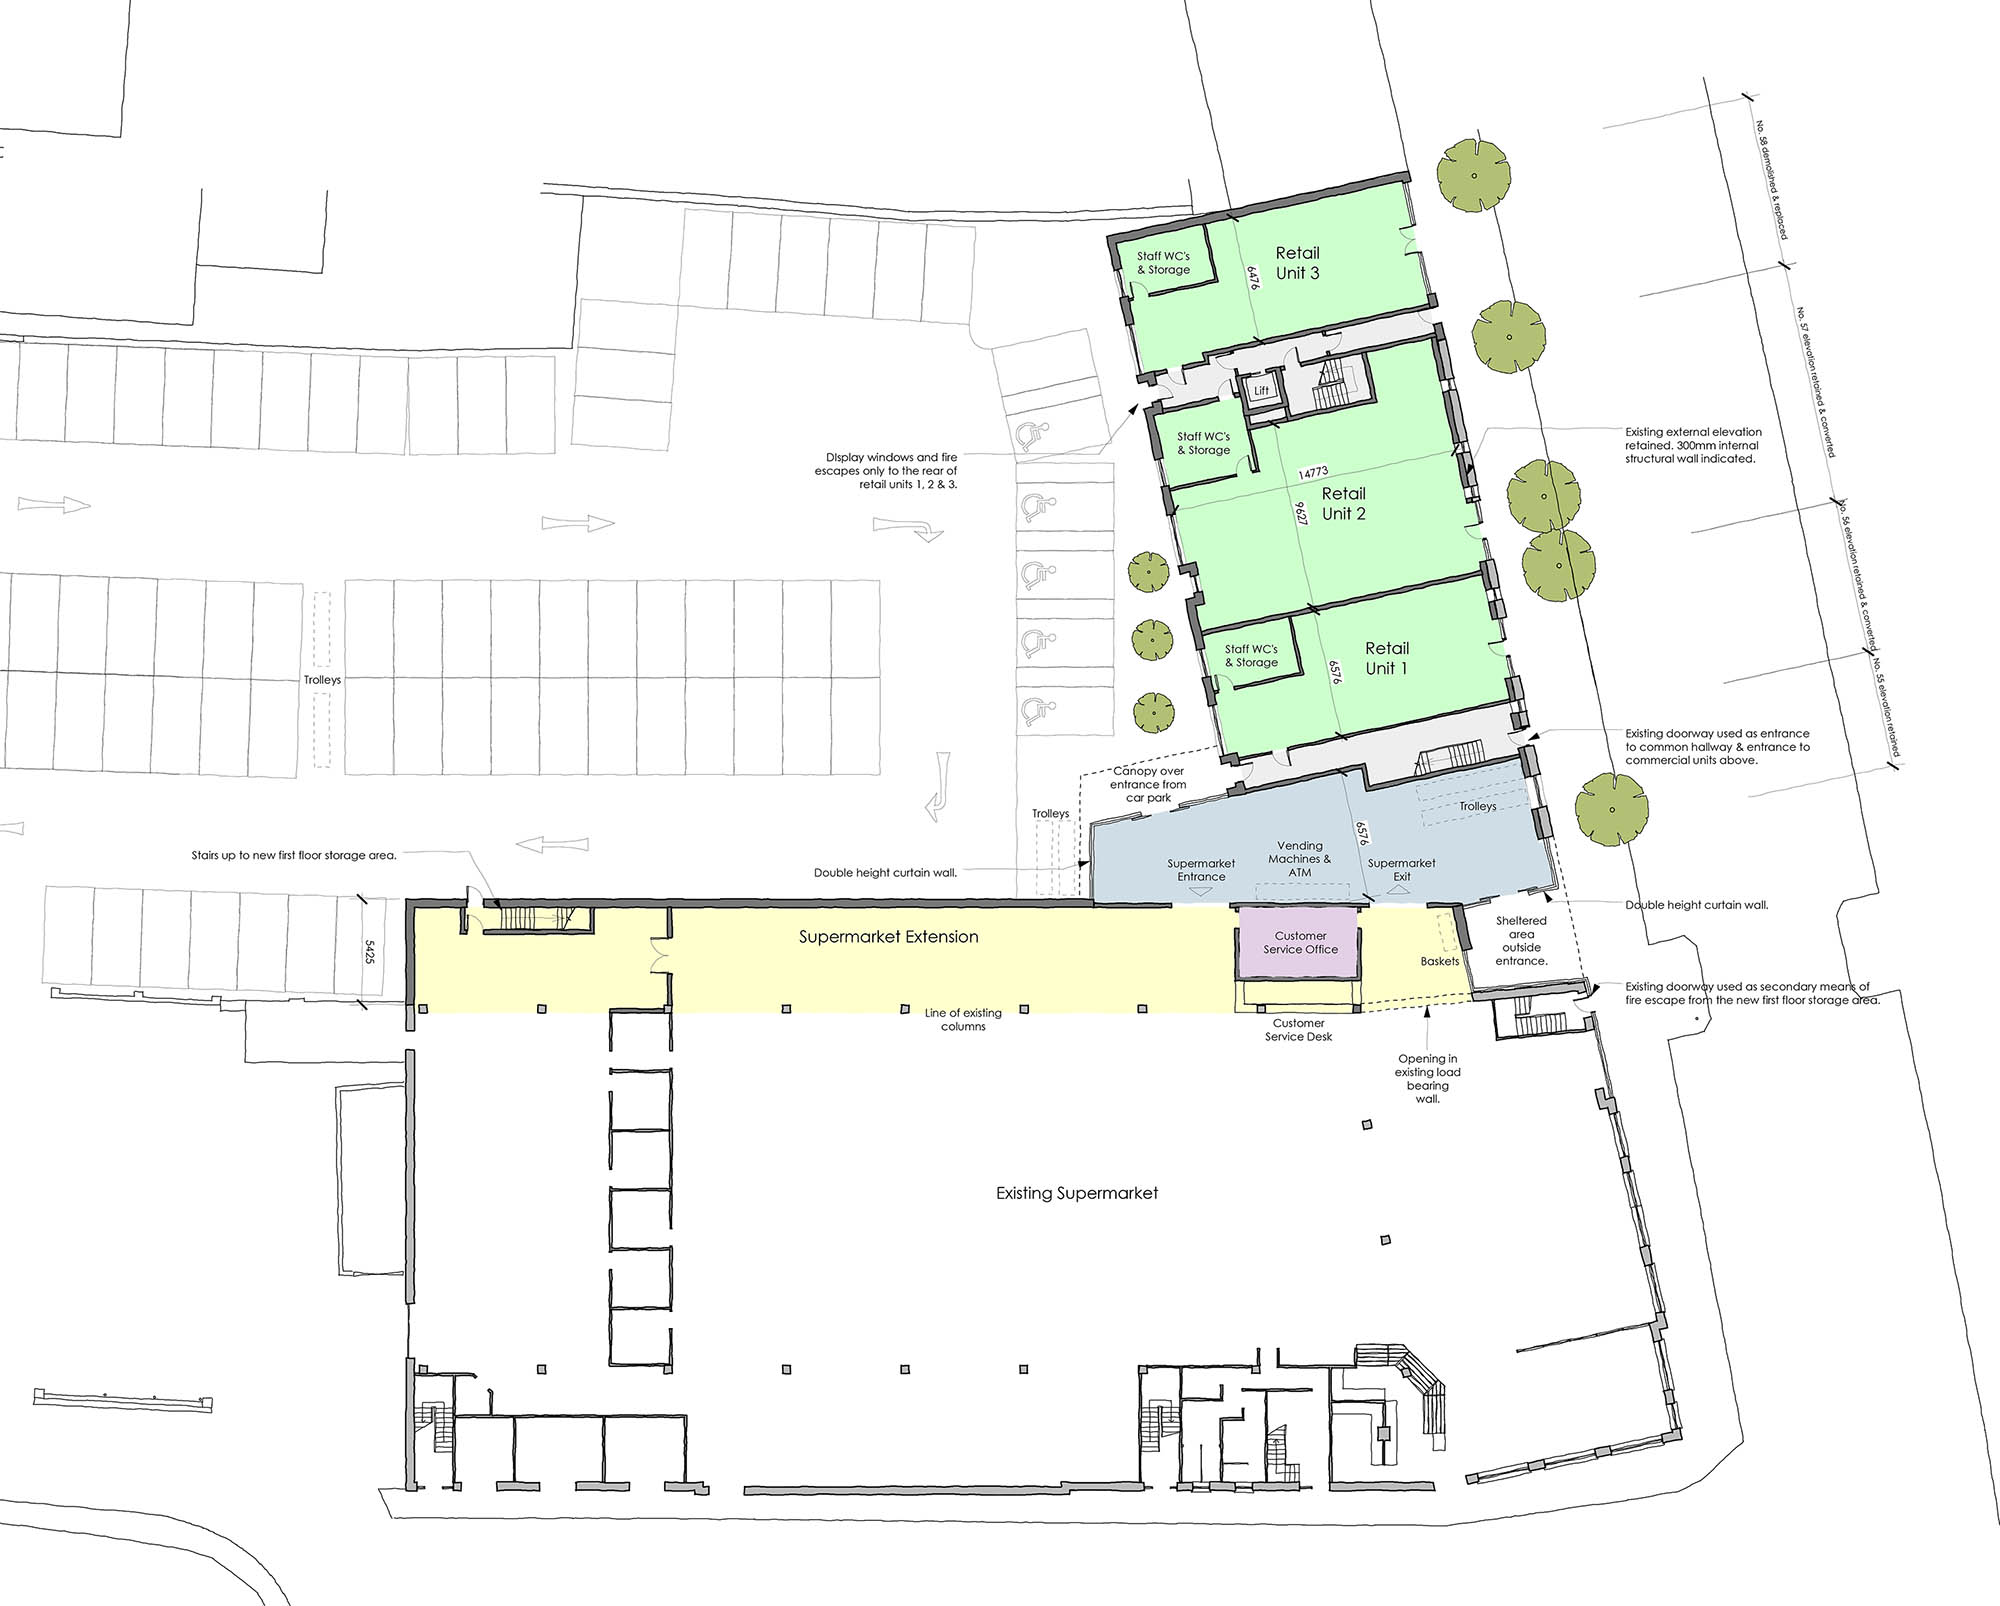 Aerial view proposed plans for Skerries town centre restoration and redevelopment project